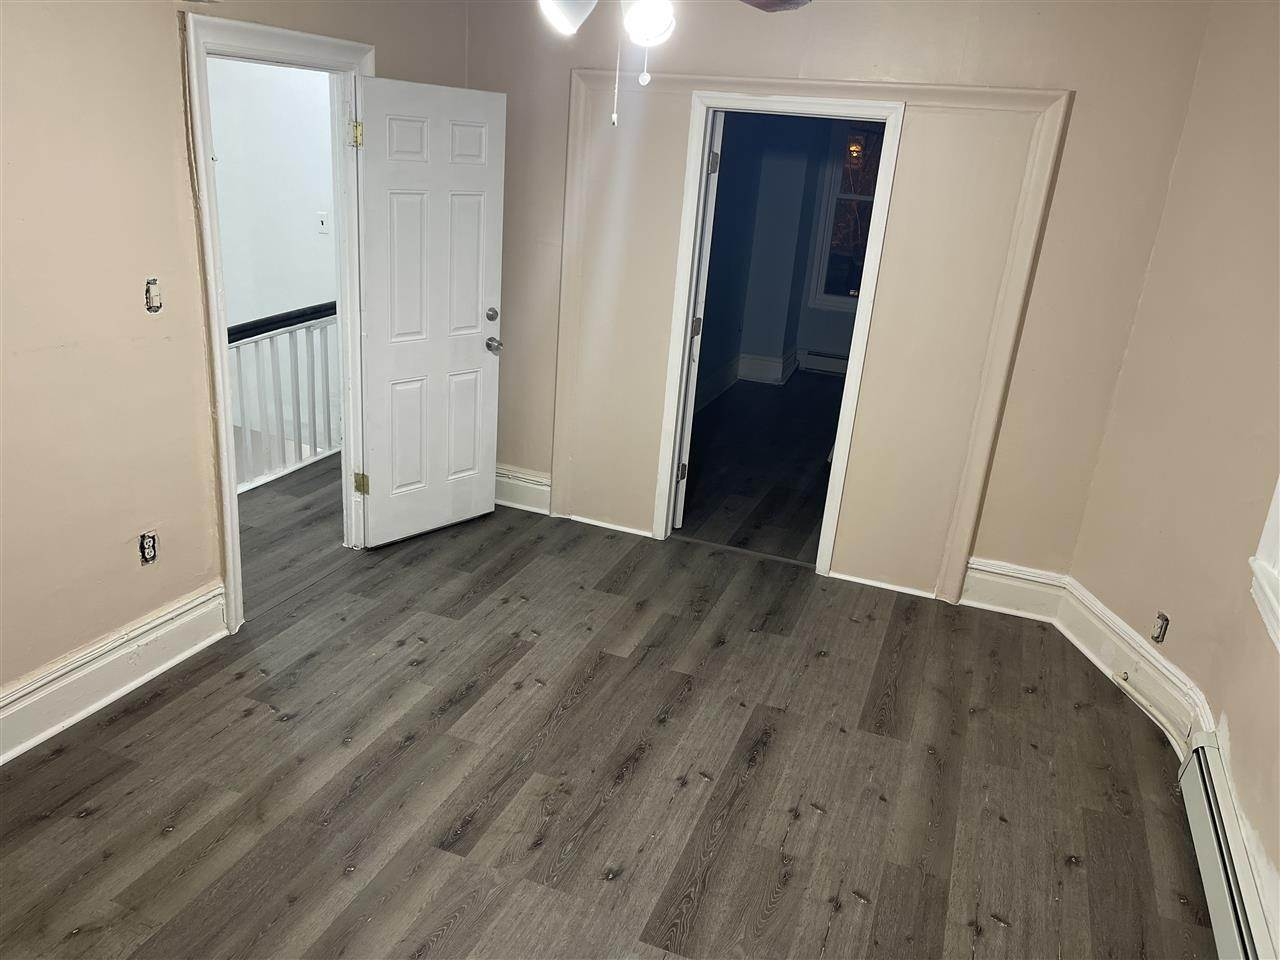 4. Two Family for Rent at 426a 63rd Street #2 West New York, New Jersey 07093 United States